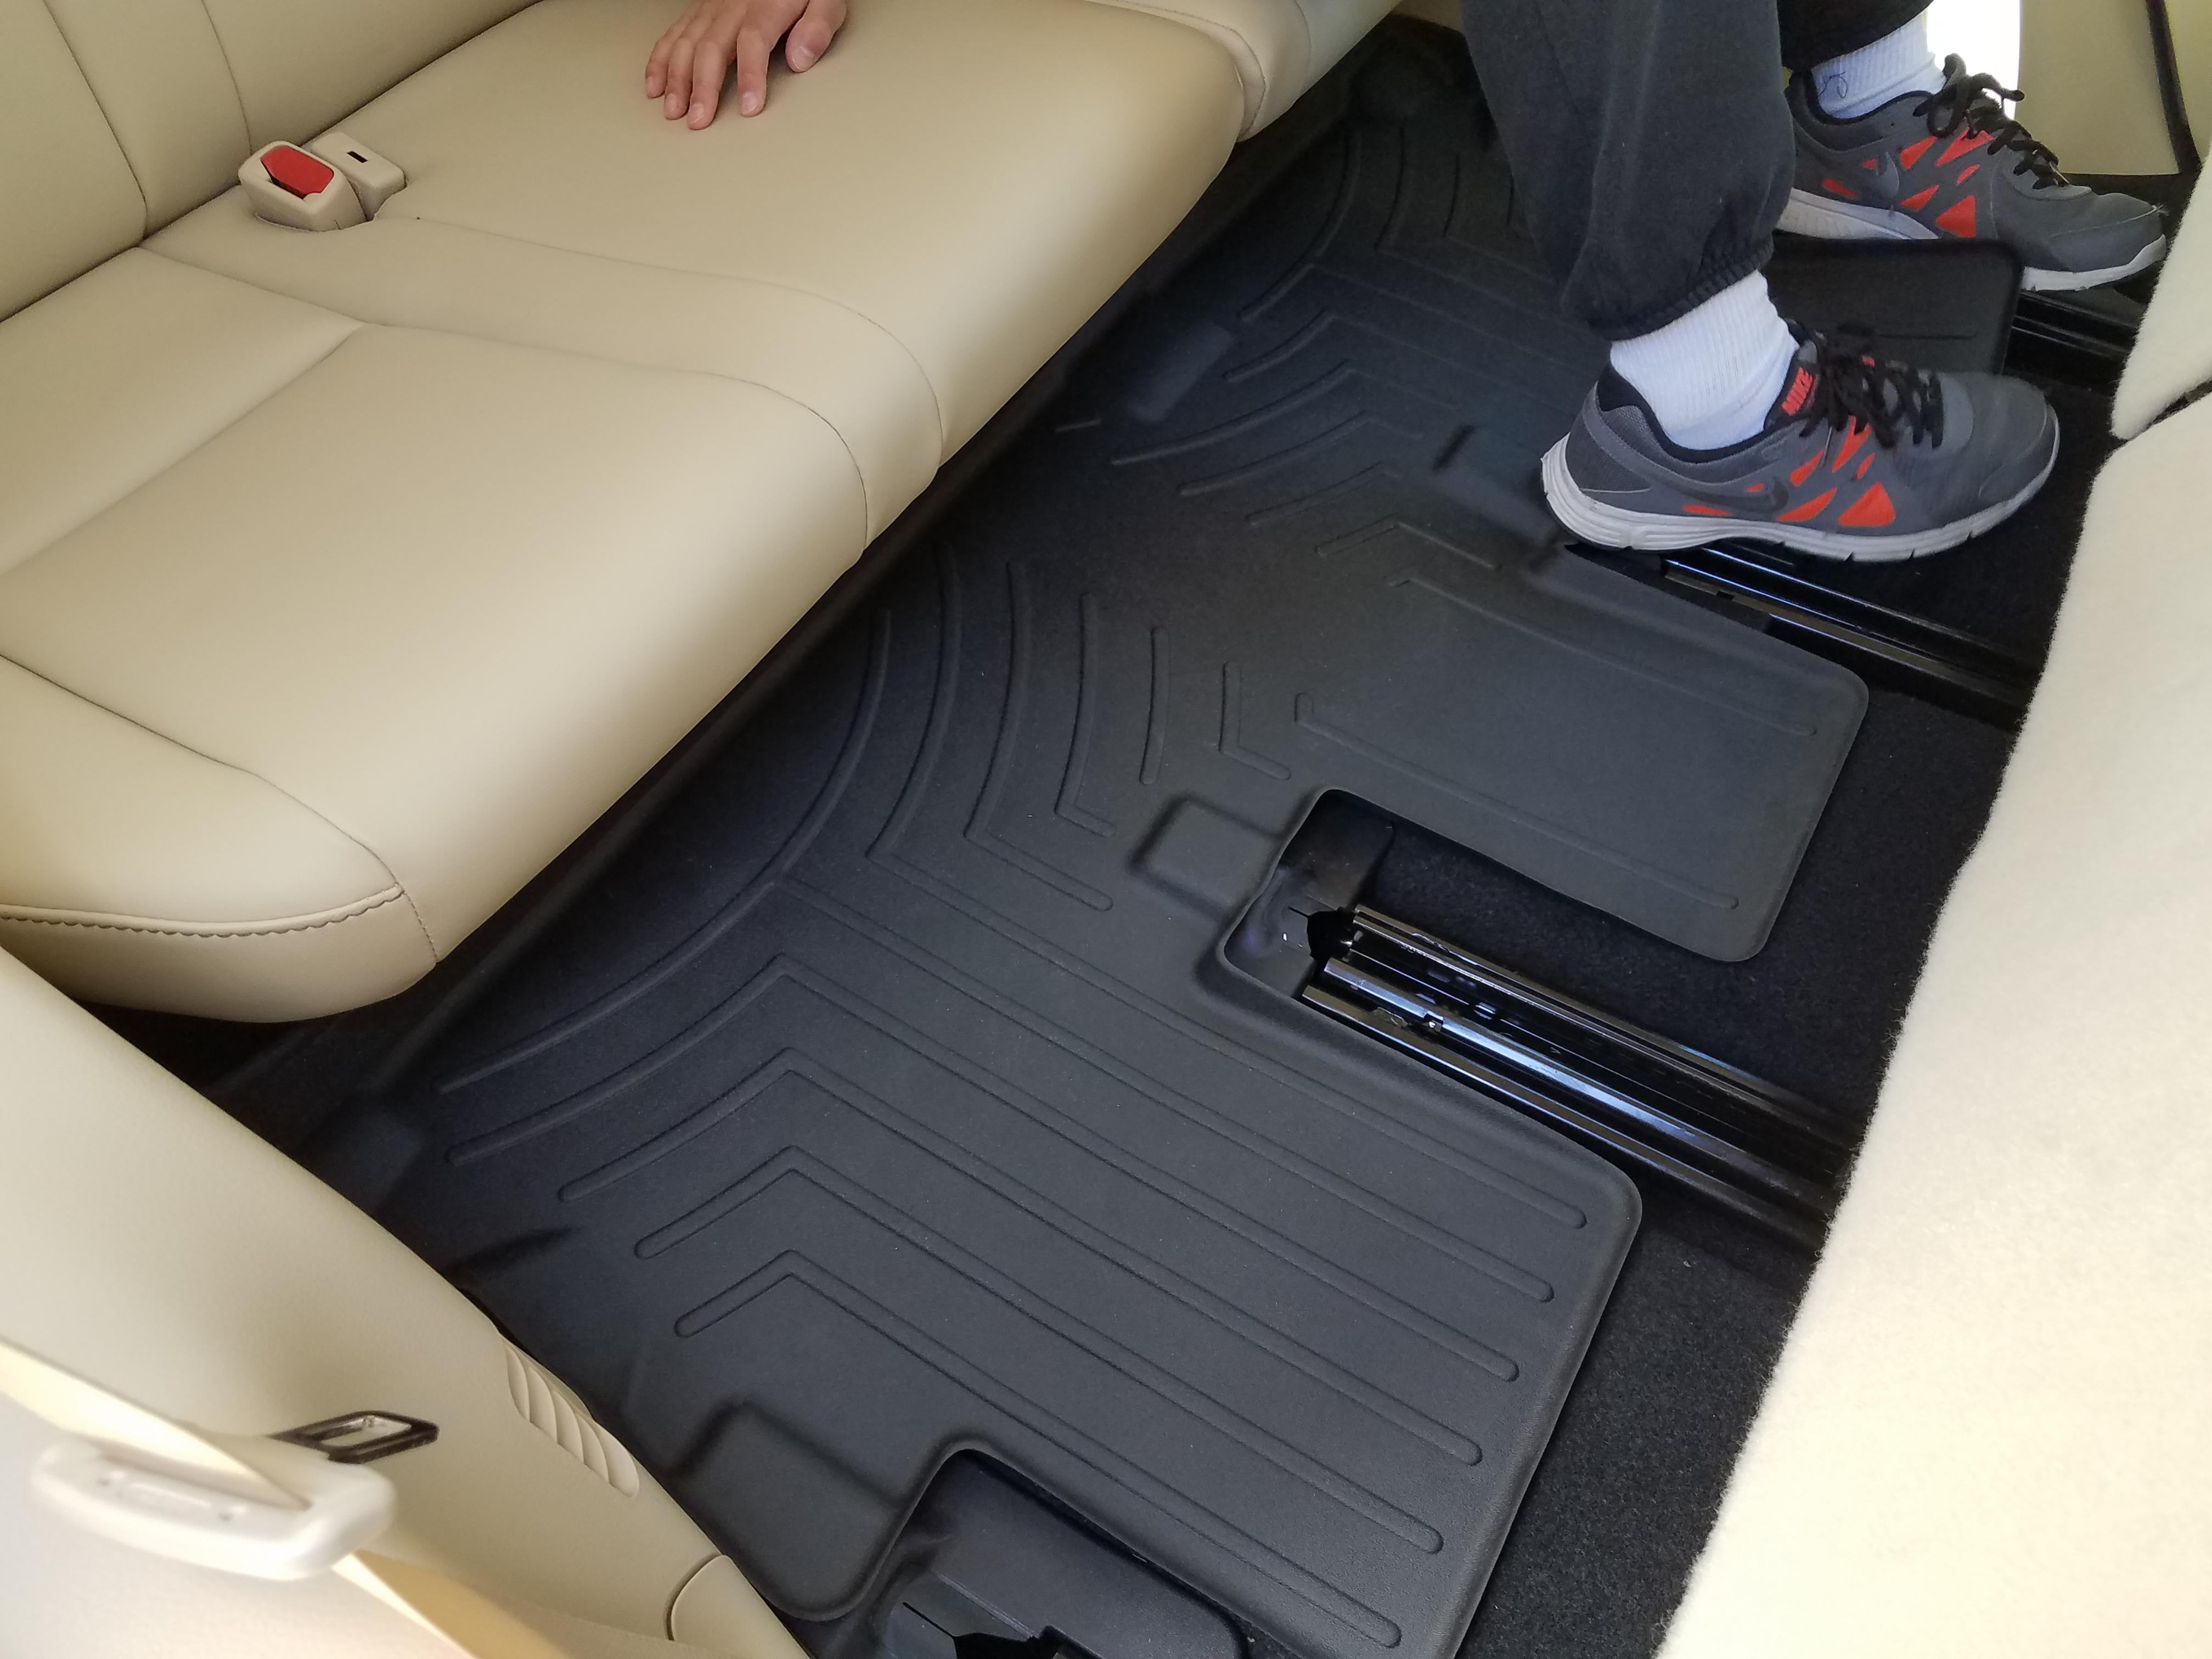 Passenger /& Rear Floor GGBAILEY D51267-S1A-RD-IS Custom Fit Car Mats for 2012 2016 2017 2014 2015 2013 2018 BMW 3 Series Wagon Red Oriental Driver